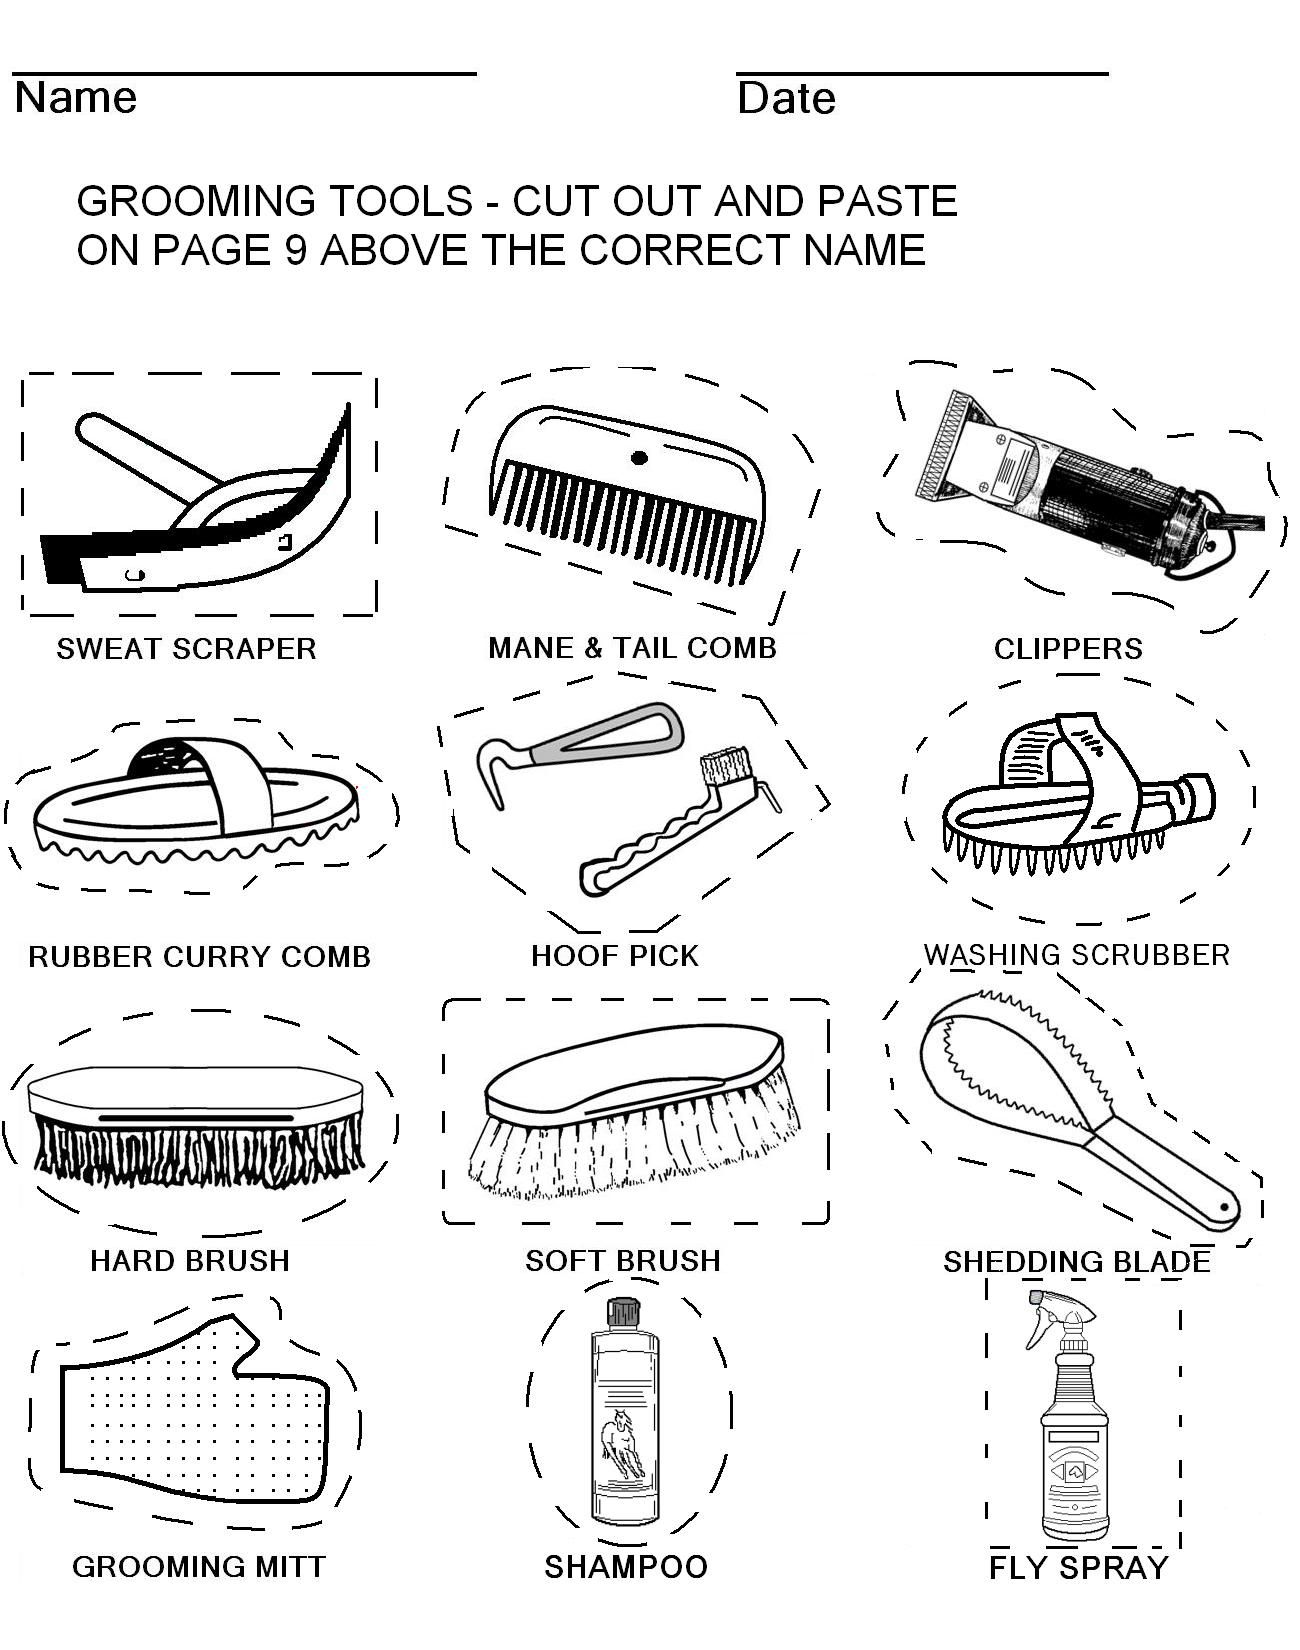 medium resolution of grooming tools cut amp paste page 8 the rest of the pages